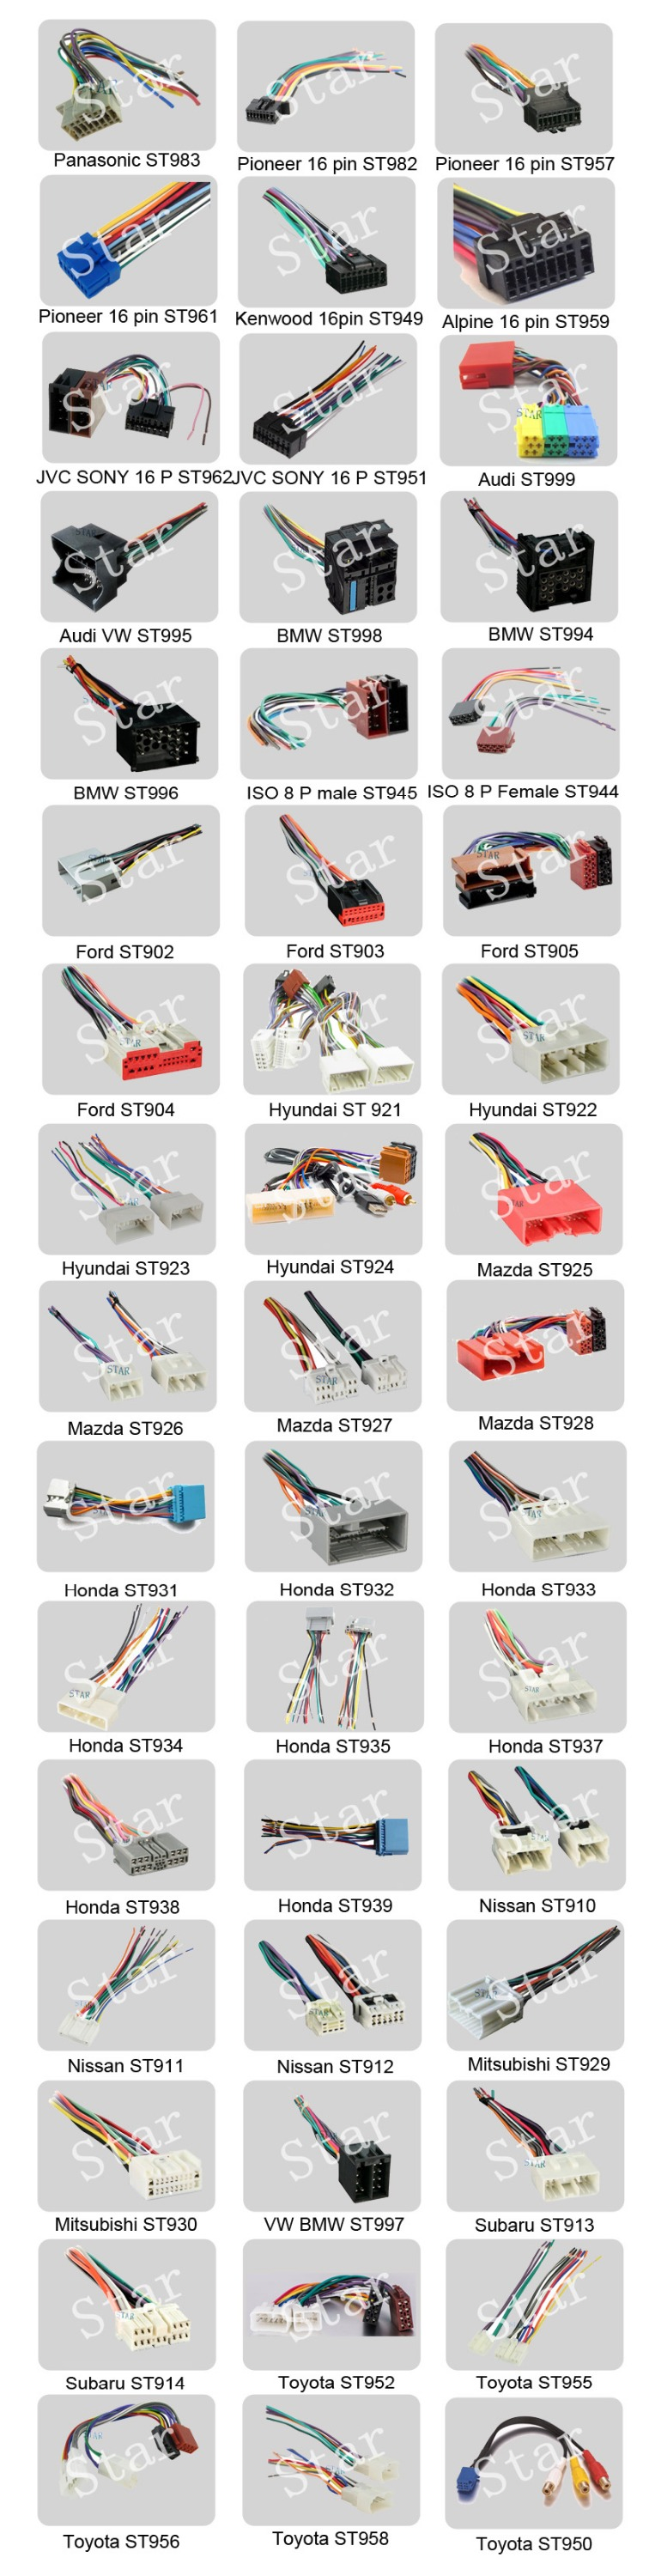 HTB1xQRnKpXXXXbnXVXXq6xXFXXXW custom auto 8 pin stereo connector iso wire harness for ford audio iso wire harness at bayanpartner.co